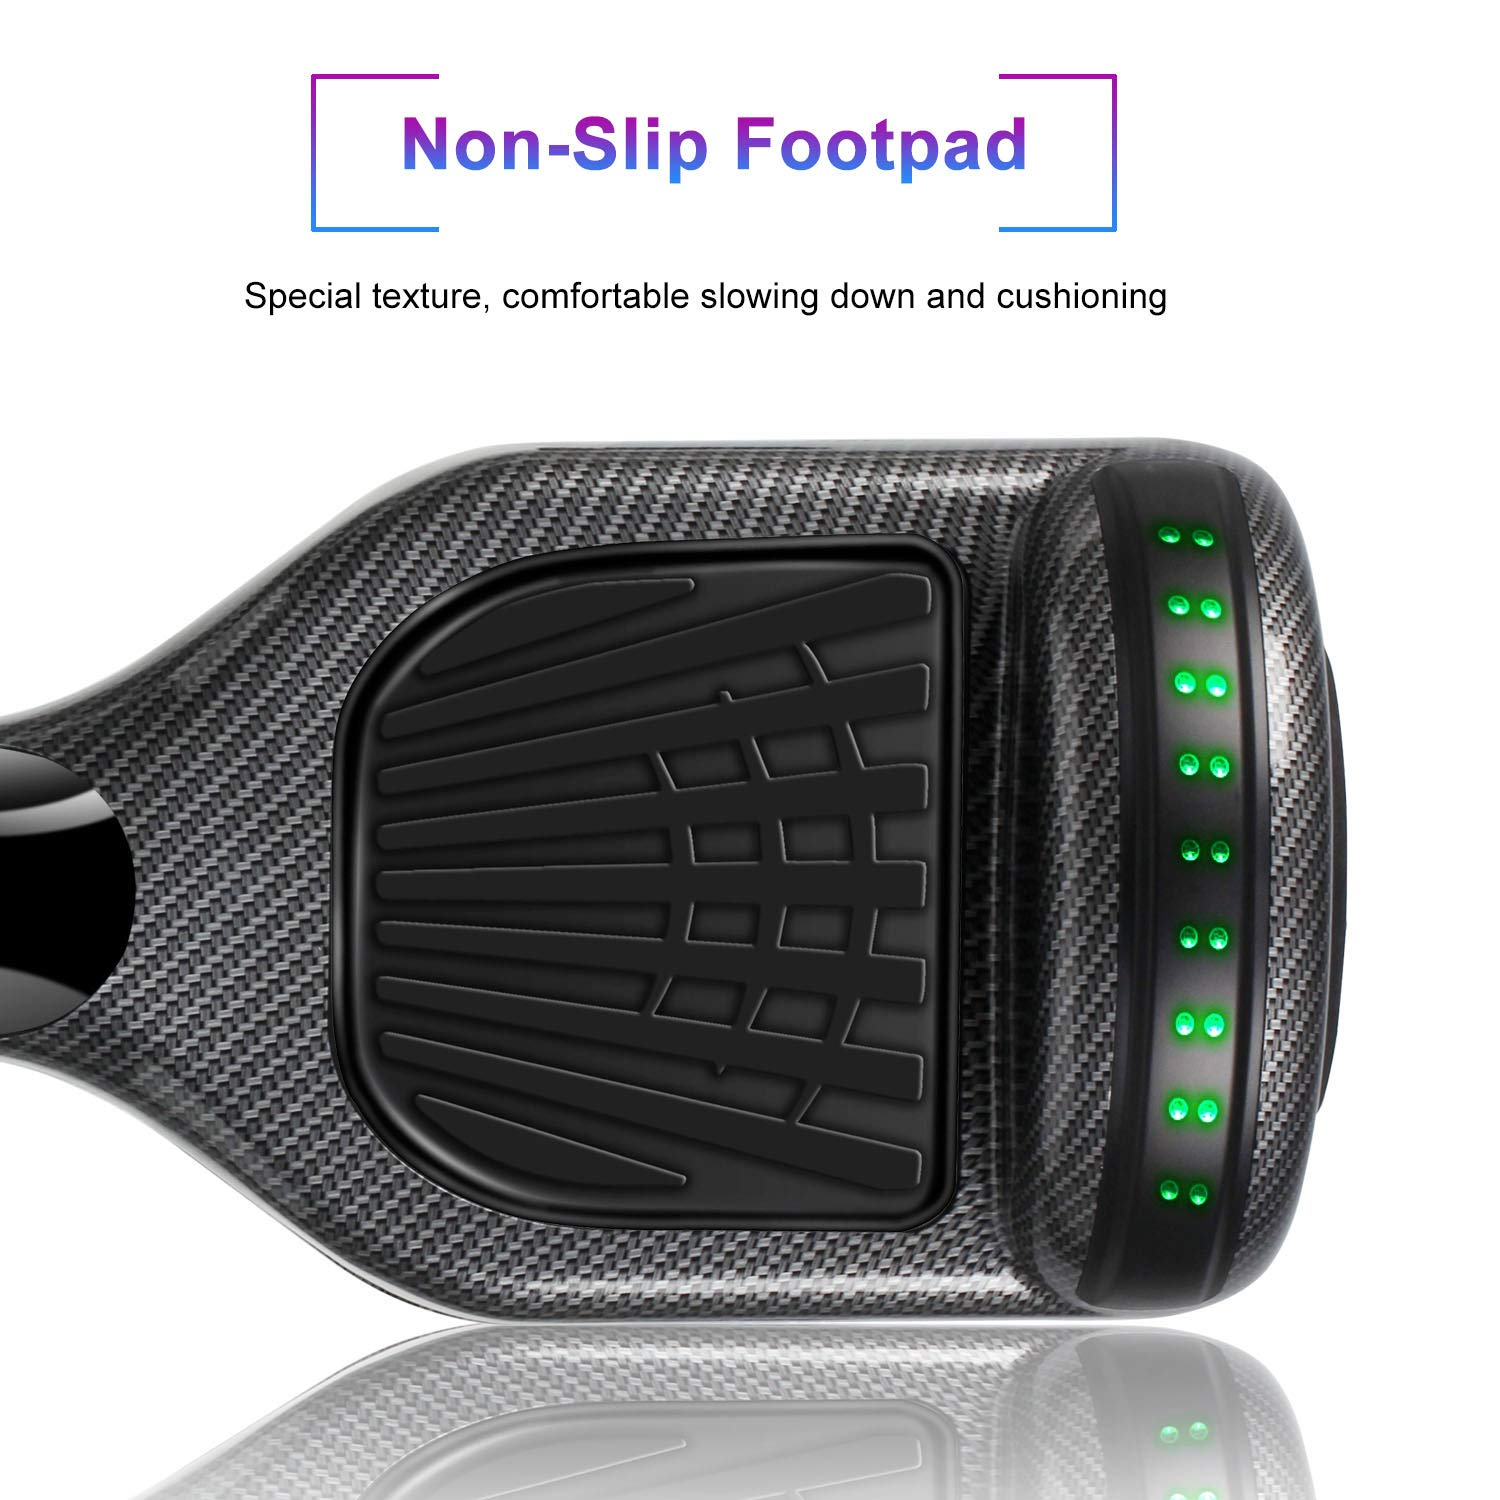 SISIGAD Hoverboard Self Balancing Scooter 6.5'' Two-Wheel Self Balancing Hoverboard with Bluetooth Speaker and LED Lights Electric Scooter for Adult Kids Gift UL 2272 Certified - Carbon Black by SISIGAD (Image #5)